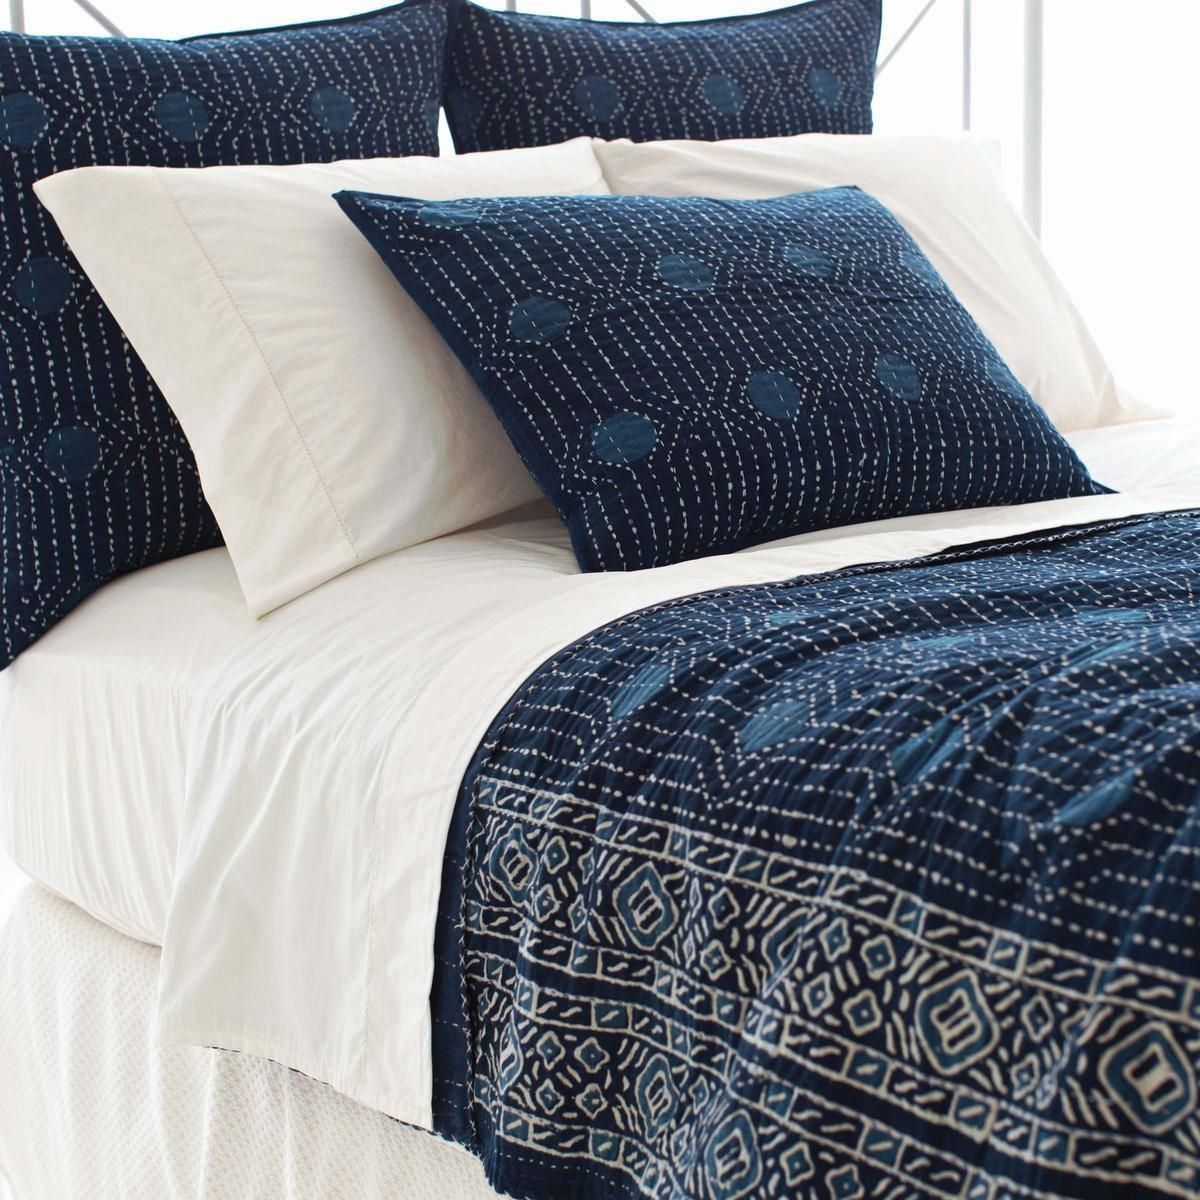 Pine Cone Hill   Resist Dot Indigo Coverlet   Inspired By Traditional  Indian Kantha Quilts,